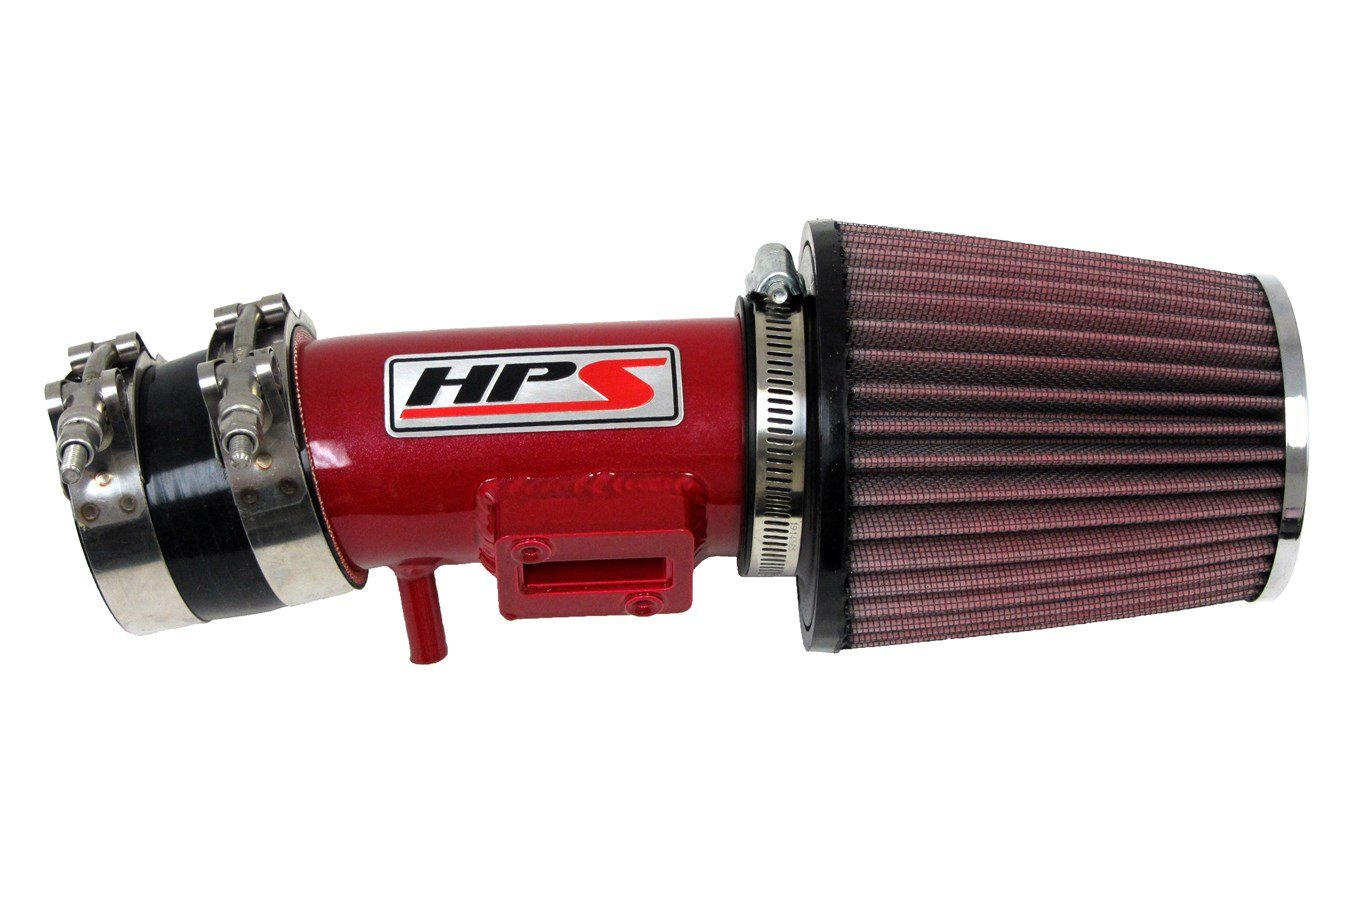 Non-CARB Compliant HPS Silicone Hoses HPS 27-102BL Blue Short Ram Air Intake Kit